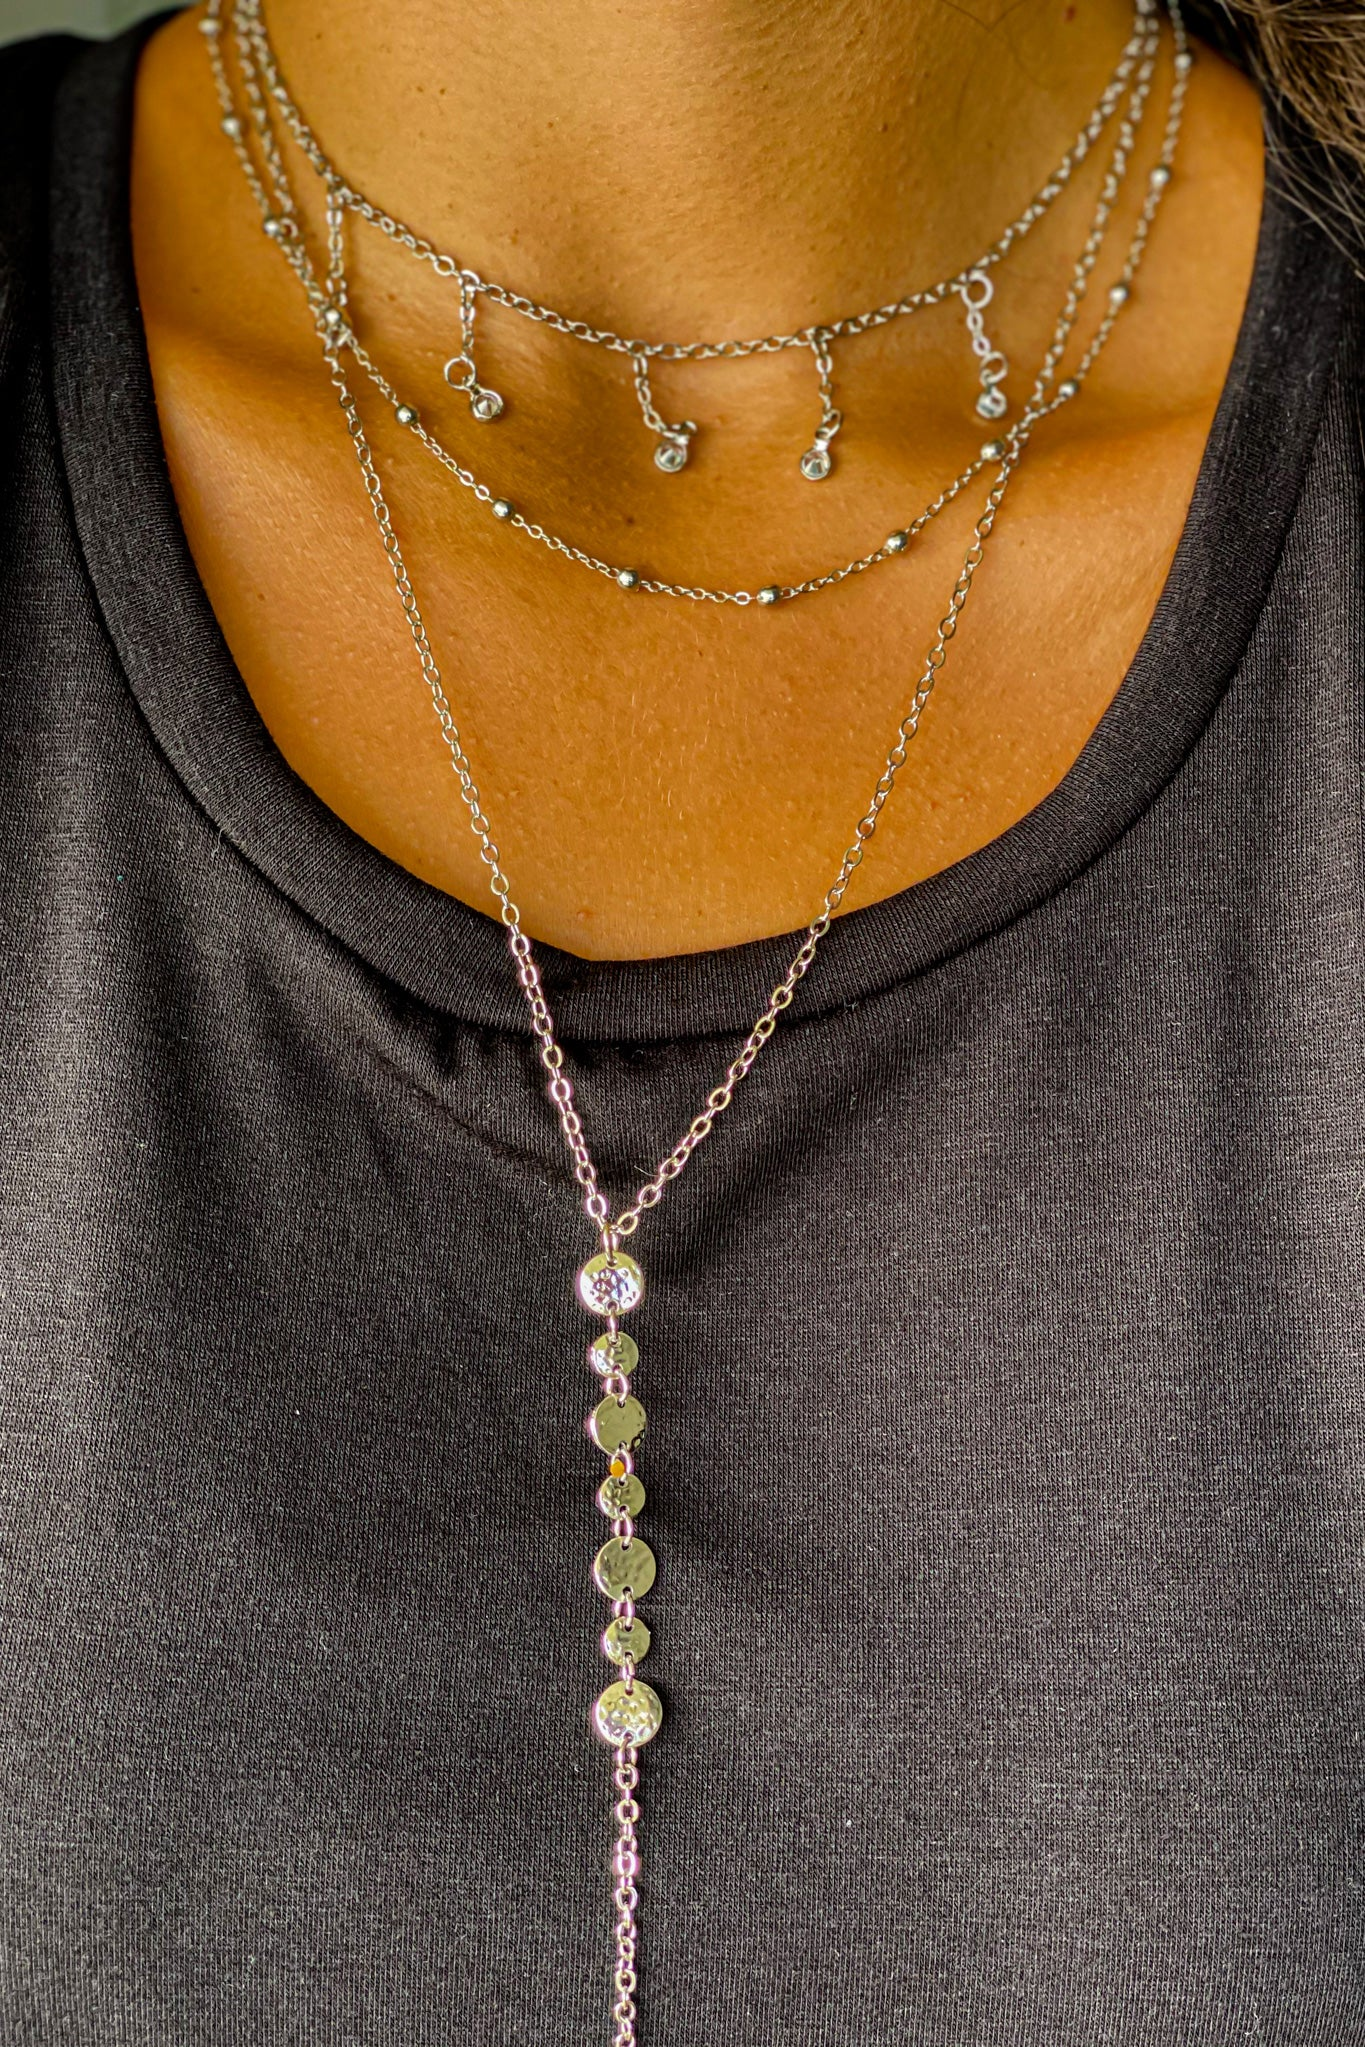 silver layered beautiful necklace